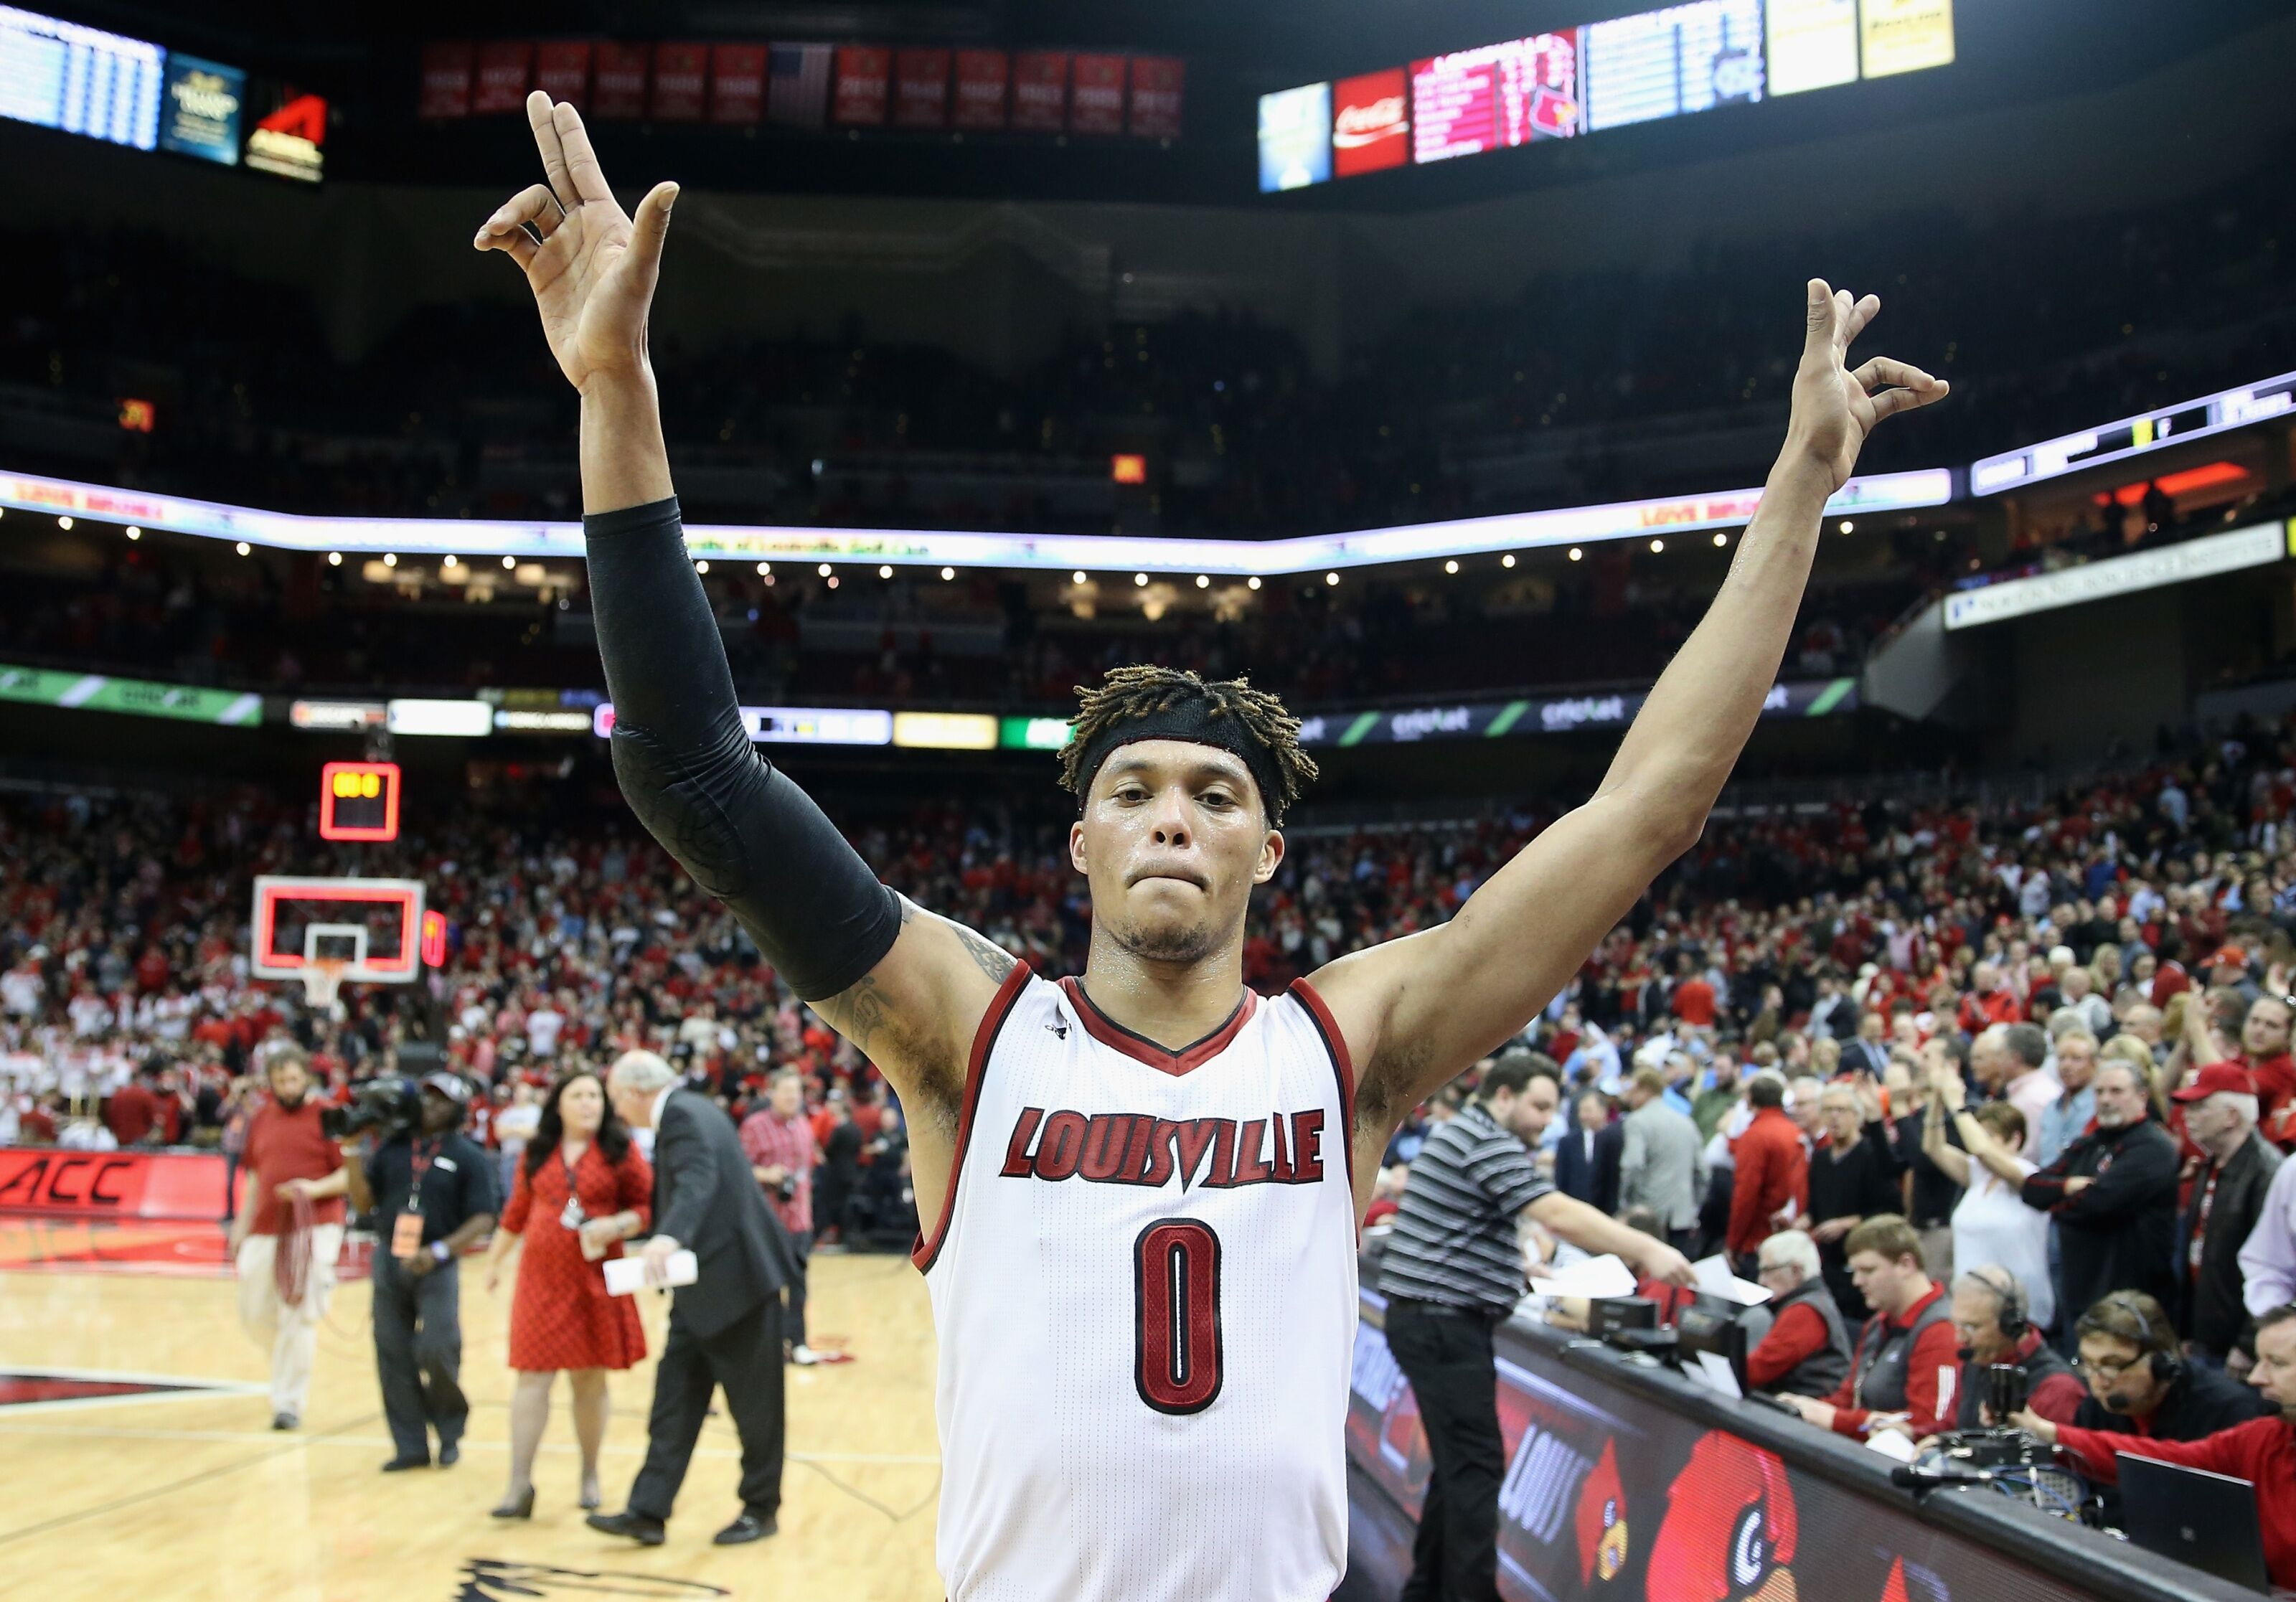 afe0d5c7d Louisville Basketball: Cards Biggest Wins in the Last 5 Years - Page 3